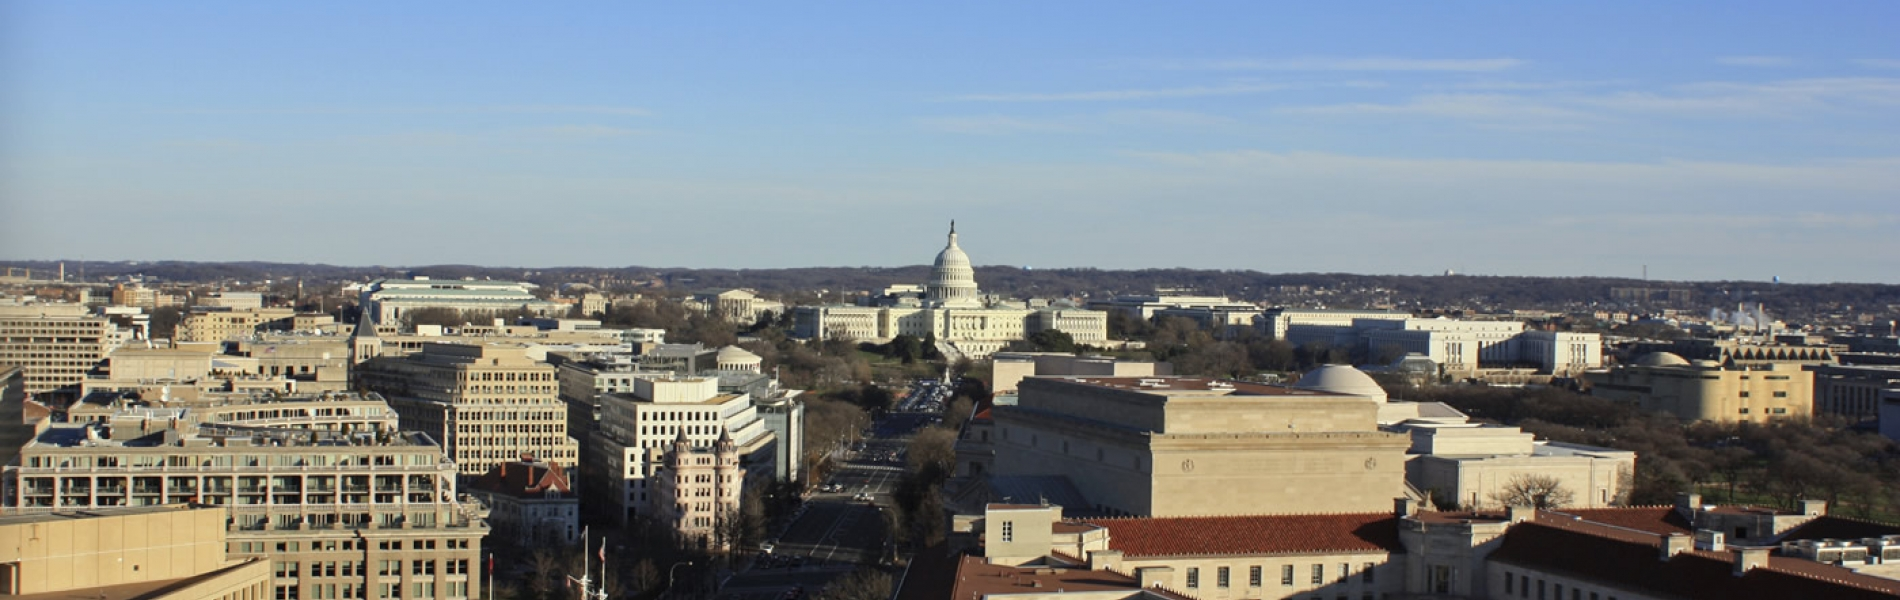 Aerial photo of Washington DC including Capitol Building